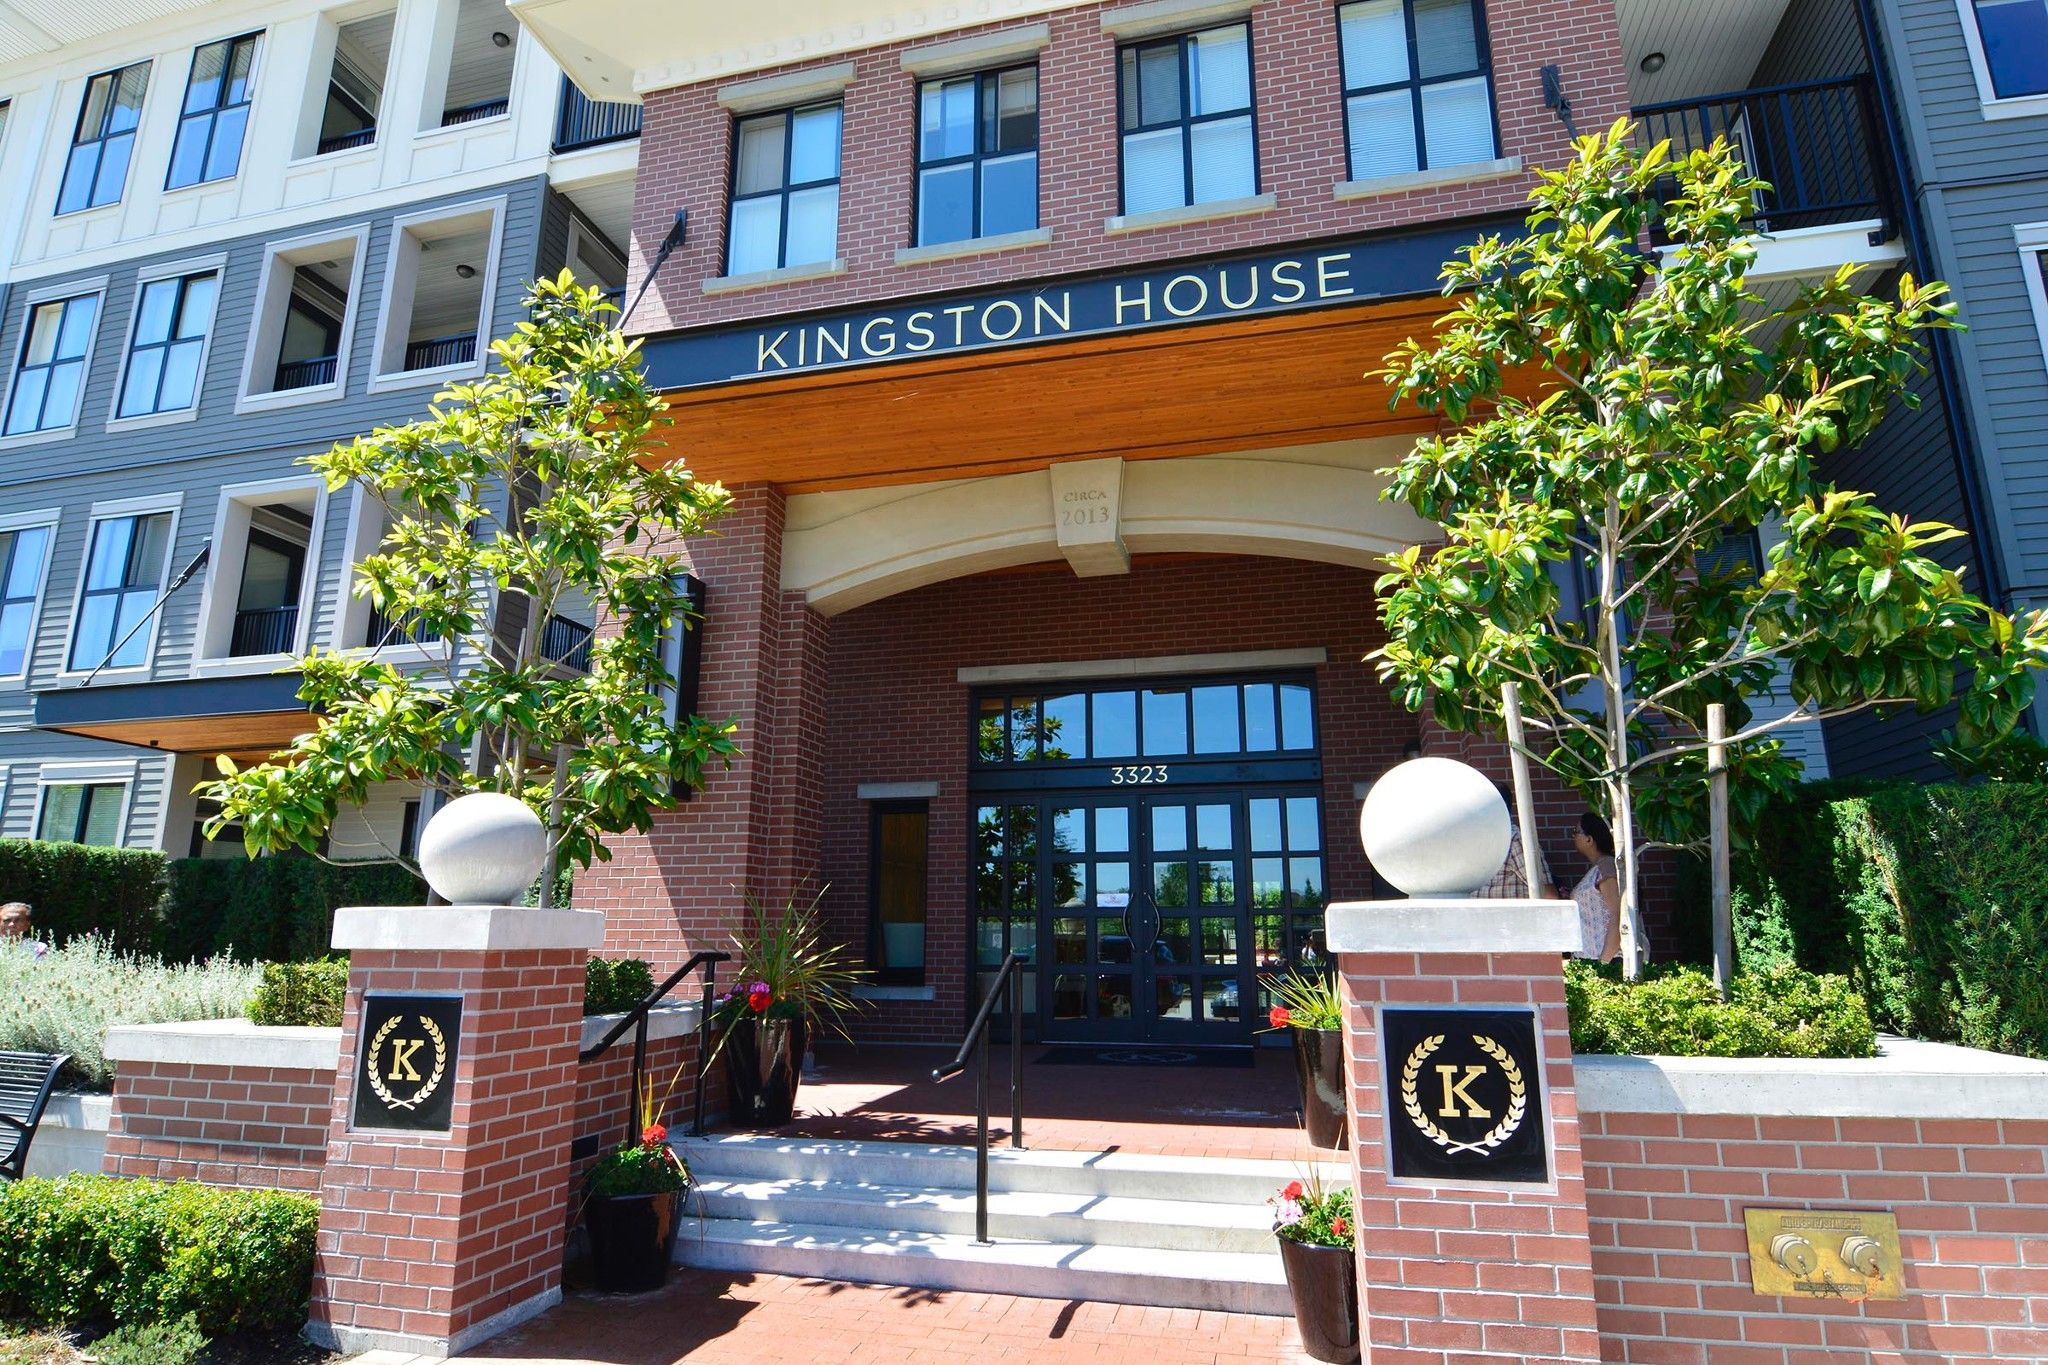 "Main Photo: 421 3323 151 Street in Surrey: Morgan Creek Condo for sale in ""KINGSTON HOUSE"" (South Surrey White Rock)  : MLS®# R2250405"